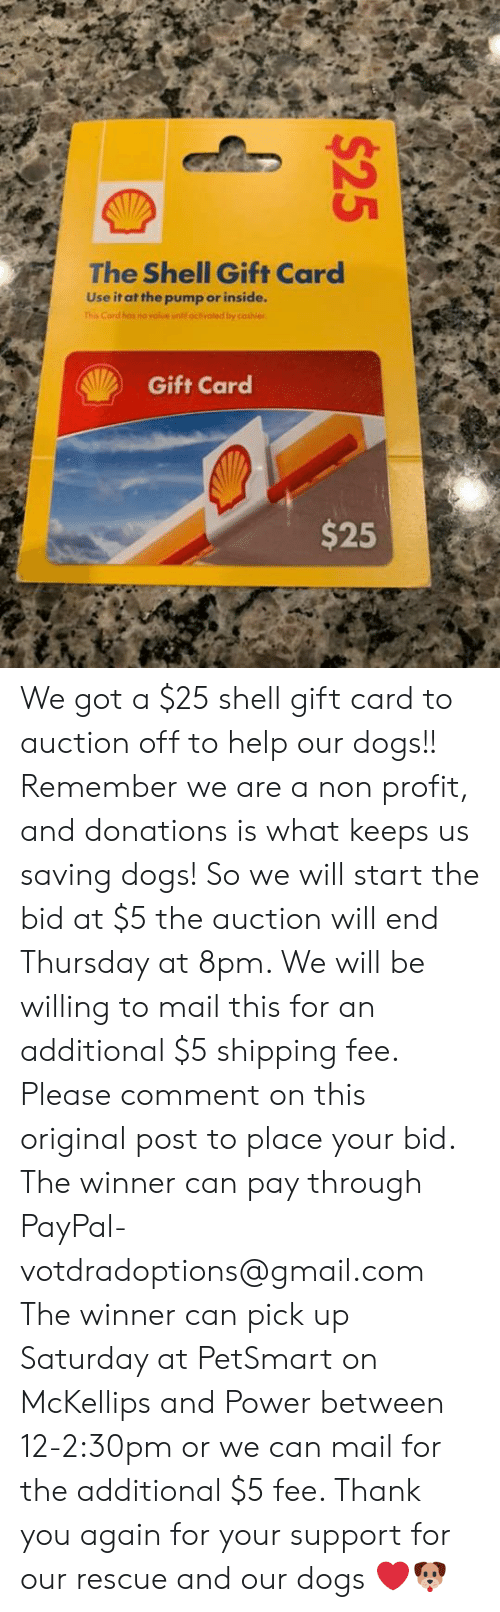 Dogs, Memes, and Thank You: The Shell Gift Card  Use it at the pump or inside.  This Card has no volue until octivated by cashier  Gift Card  $25  $25 We got a $25 shell gift card to auction off to help our dogs!! Remember we are a non profit, and donations is what keeps us saving dogs! So we will start the bid at $5 the auction will end Thursday at 8pm. We will be willing to mail this for an additional $5 shipping fee. Please comment on this original post to place your bid.  The winner can pay through PayPal- votdradoptions@gmail.com  The winner can pick up Saturday at PetSmart on McKellips and Power between 12-2:30pm or we can mail for the additional $5 fee.  Thank you again for your support for our rescue and our dogs ❤️🐶